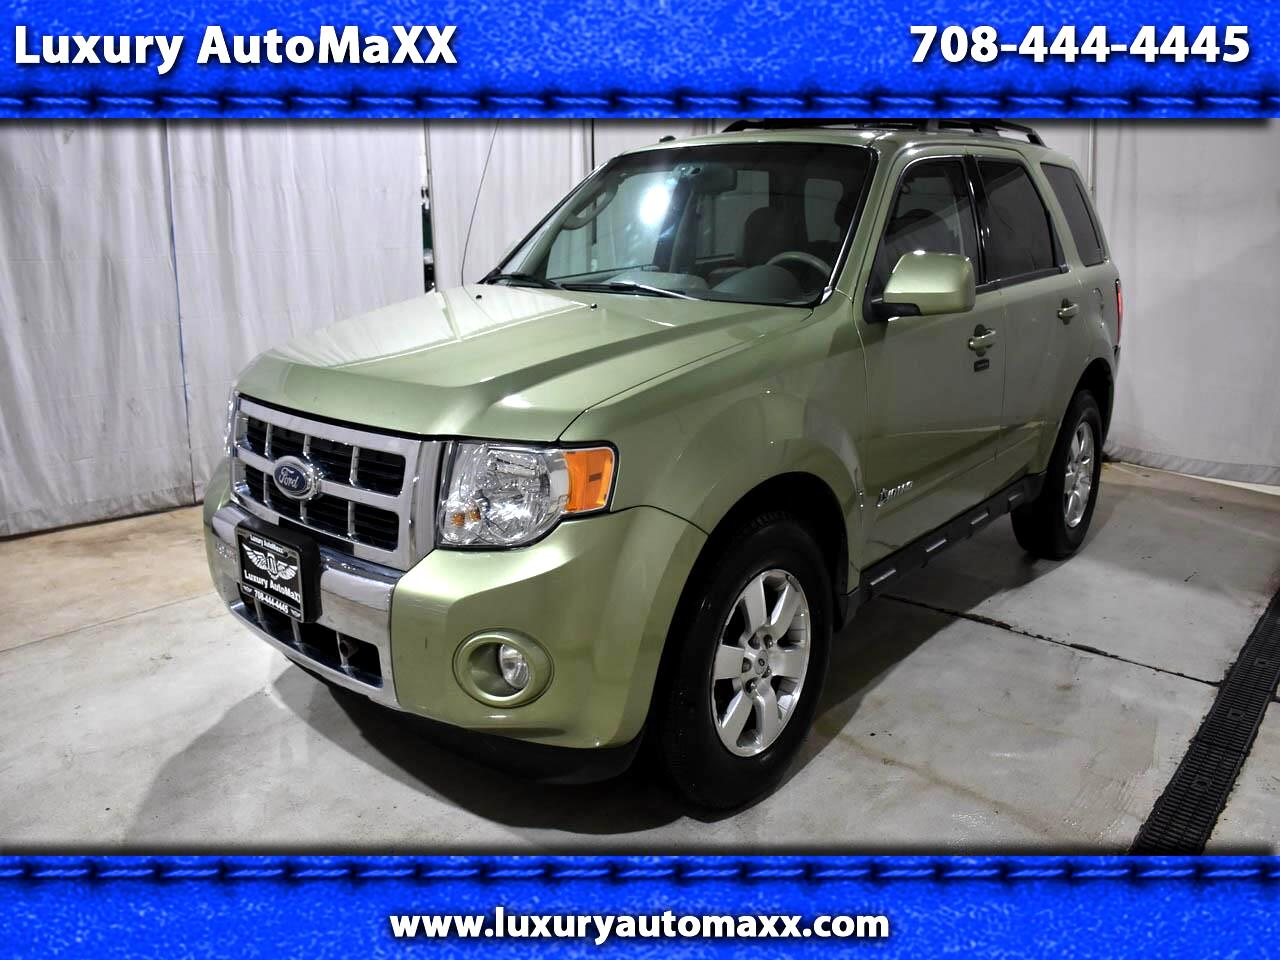 2009 Ford Escape Hybrid LIMITED 4WD LEATHER SUNROOF BLUETOOTH